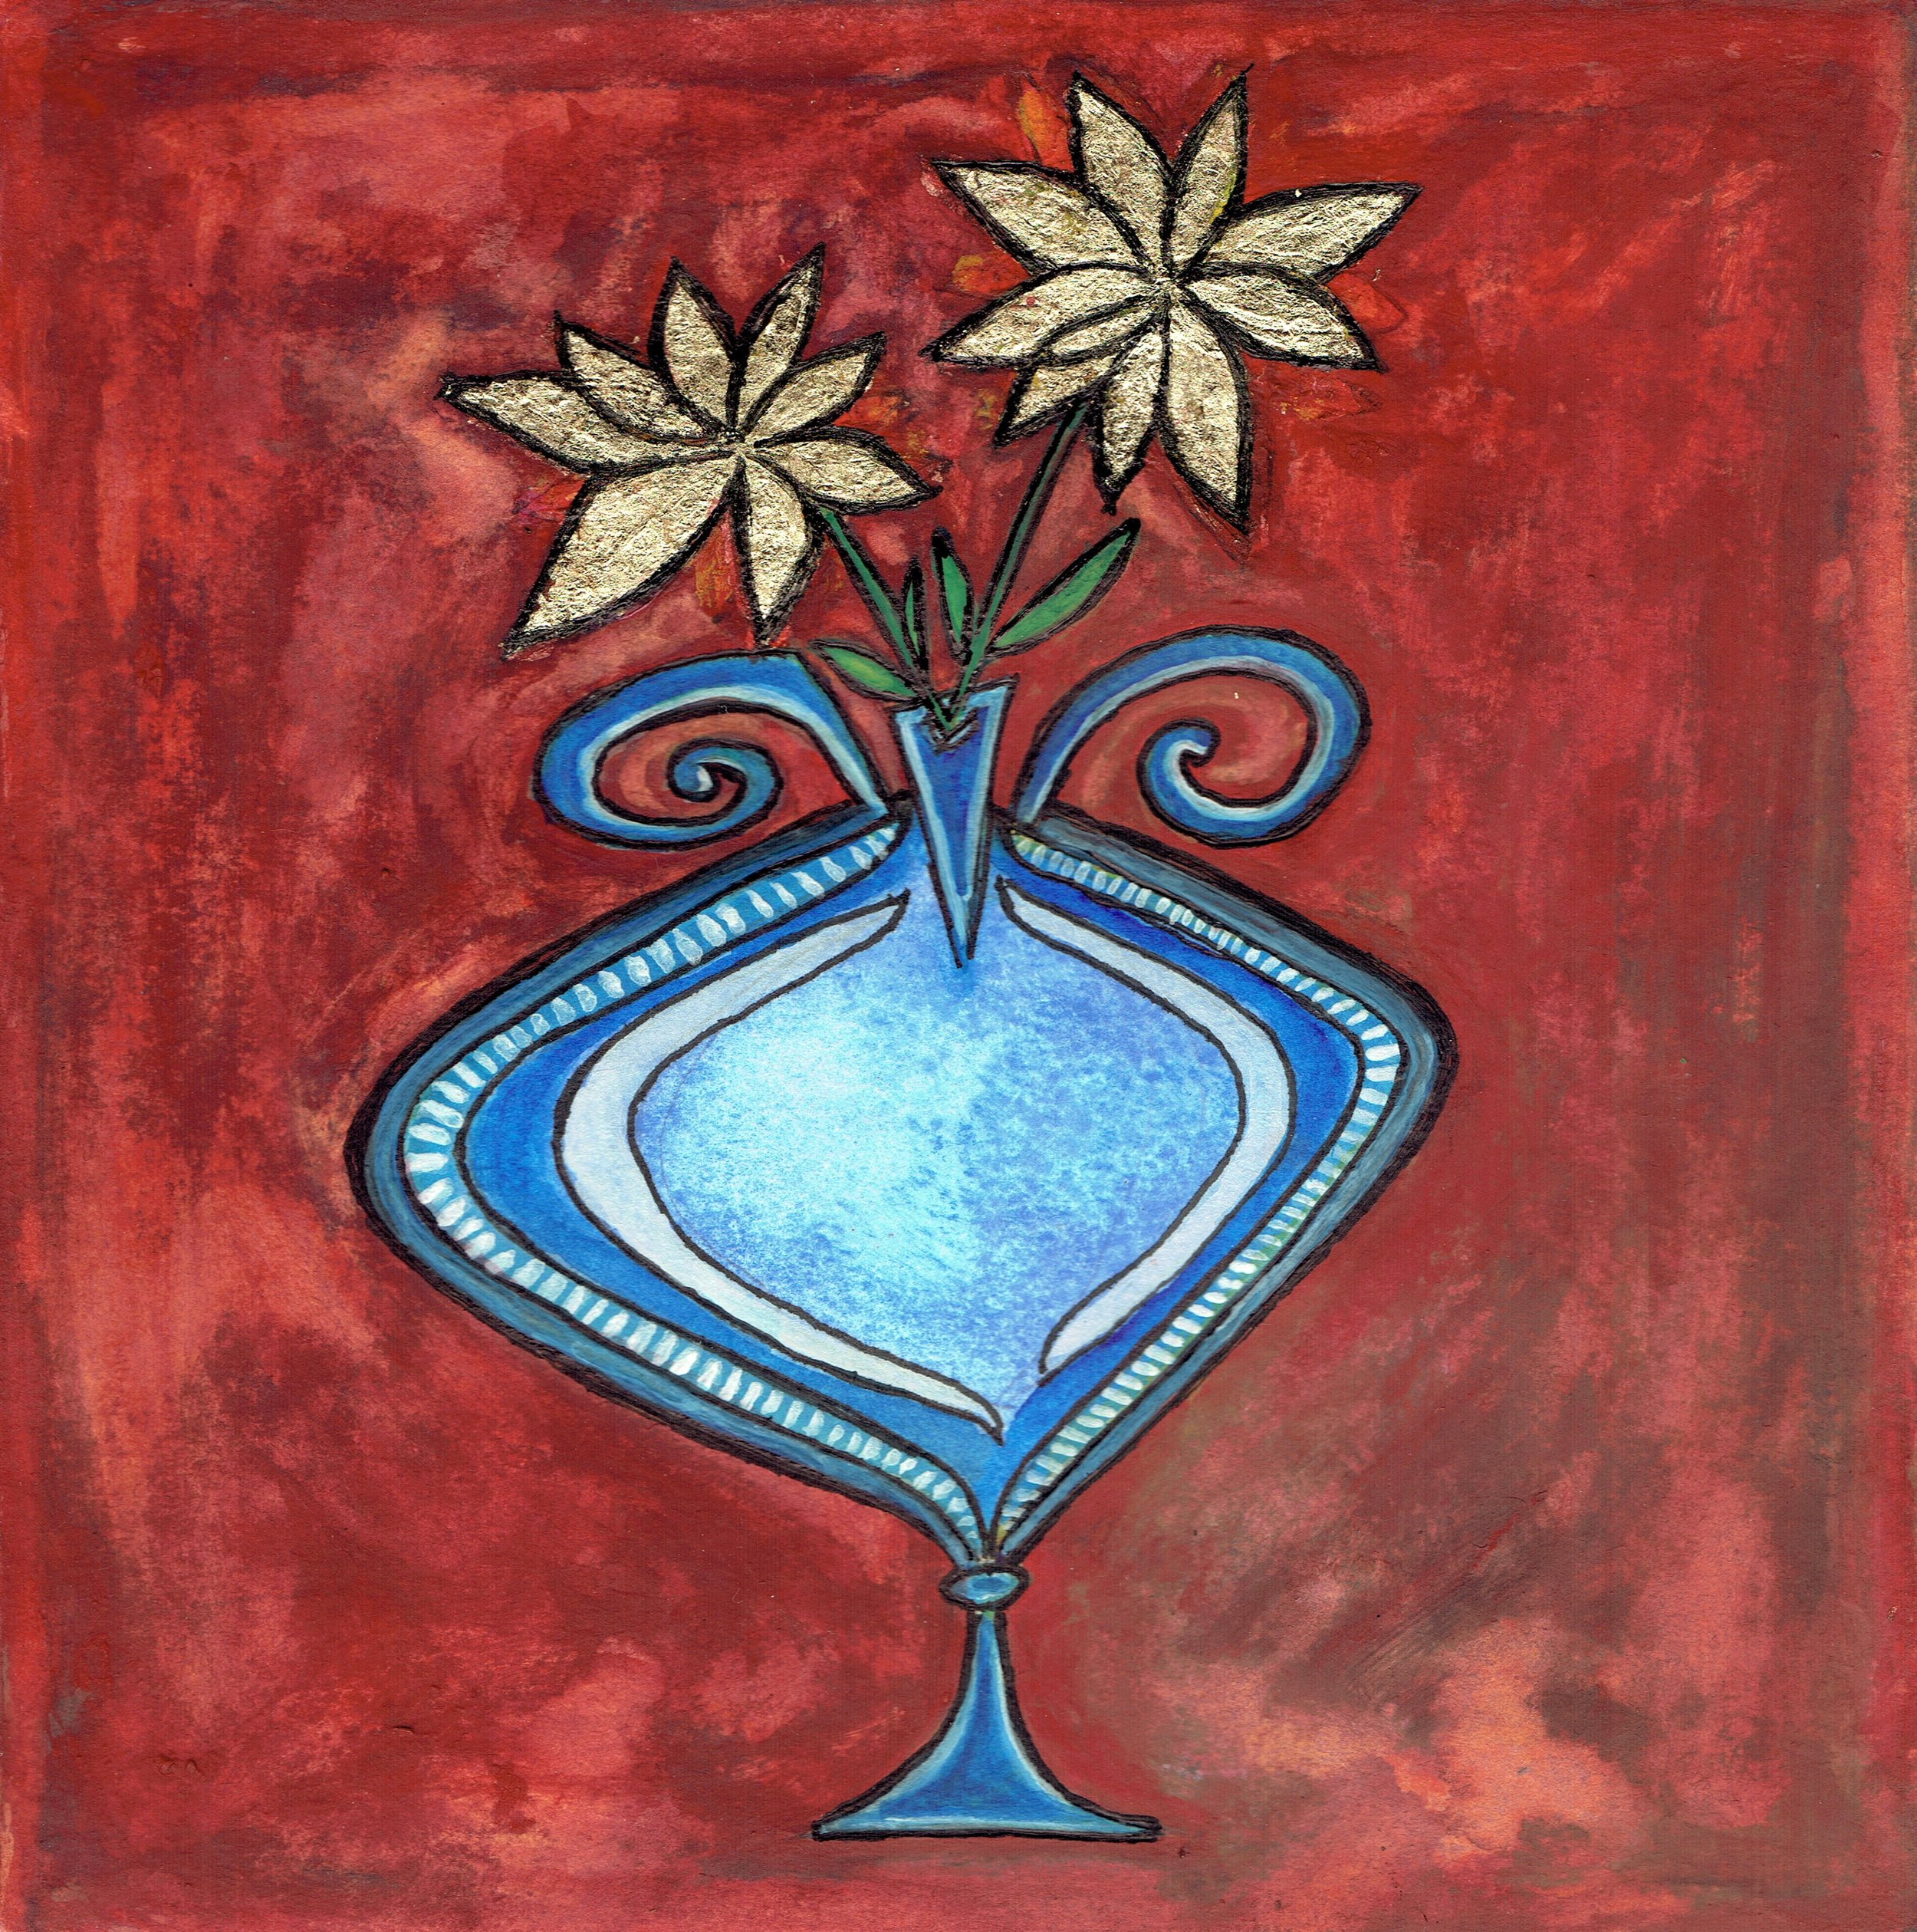 blue-vase-with-golden-flowers-painting-zepeda.jpg